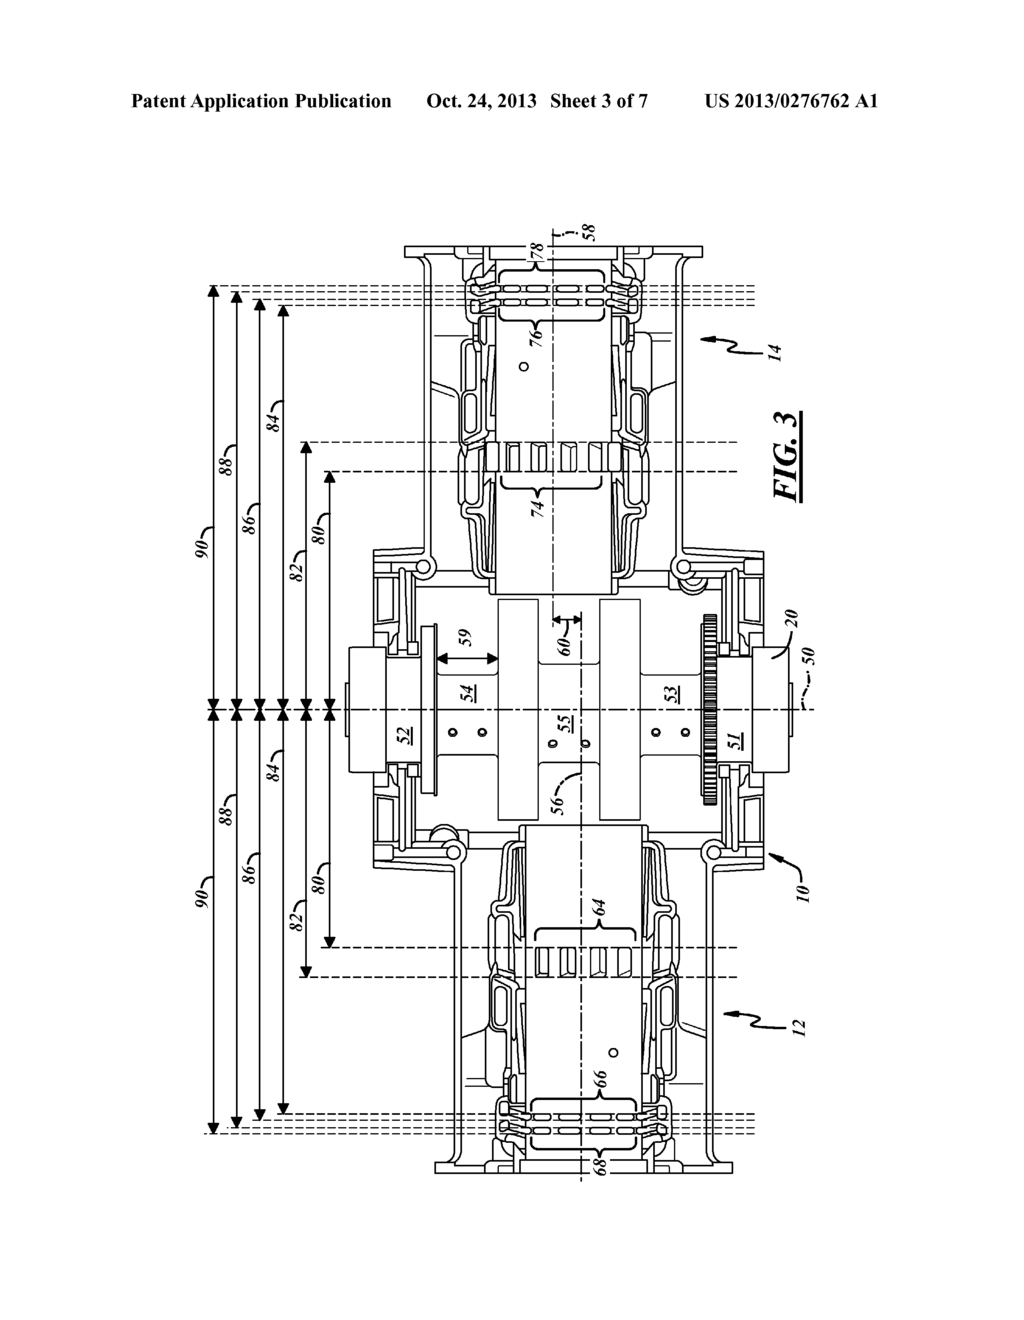 Briggs And Stratton 16 Hp Opposed Twin Wiring Diagram Source Msd Tecumseh Ignition System In Addition 30 Cylinder Engine